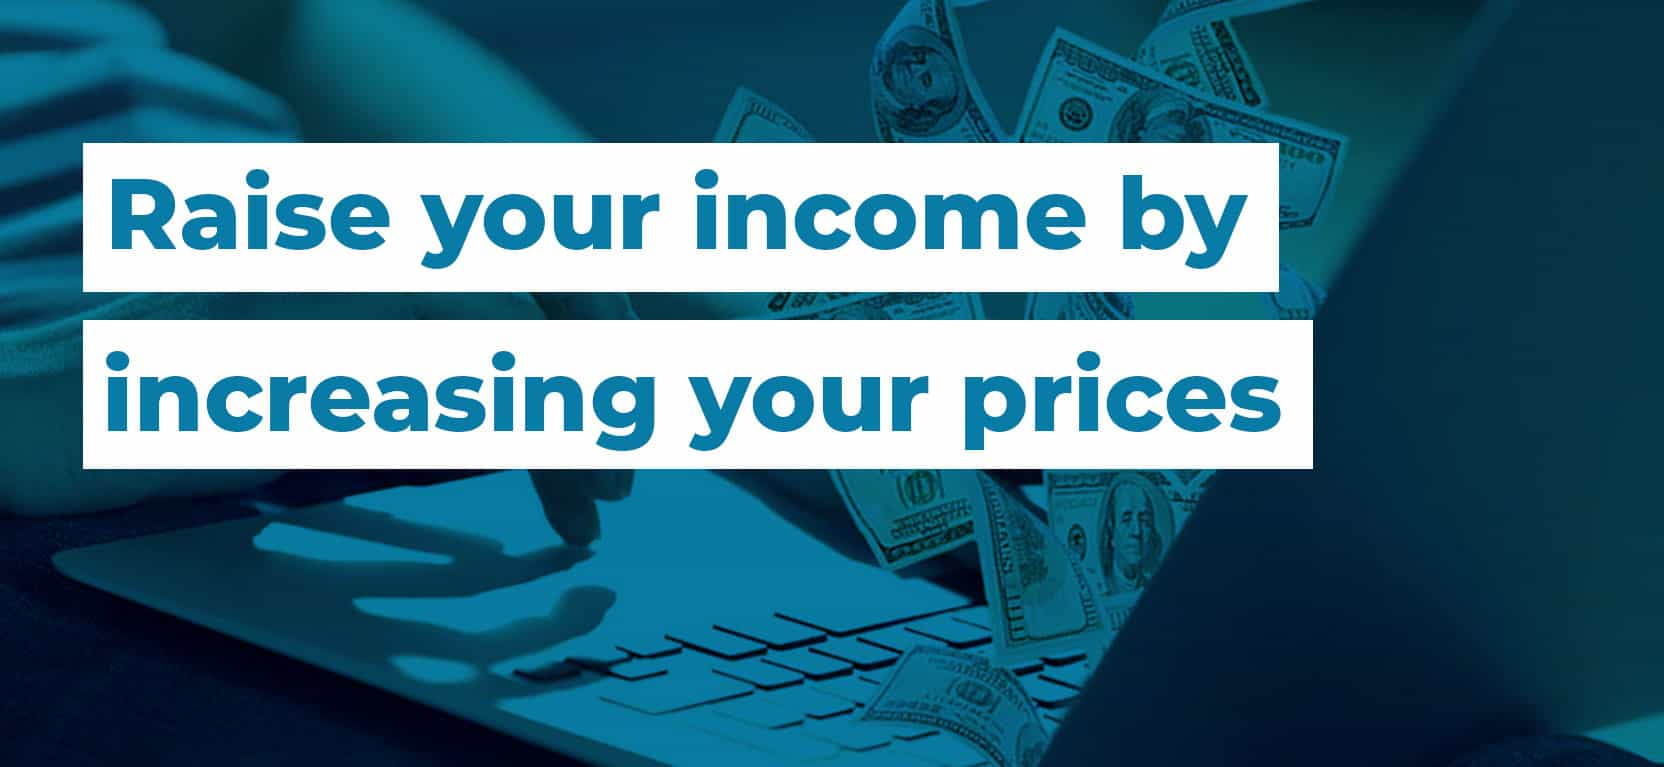 45 Raise your income by increasing your prices